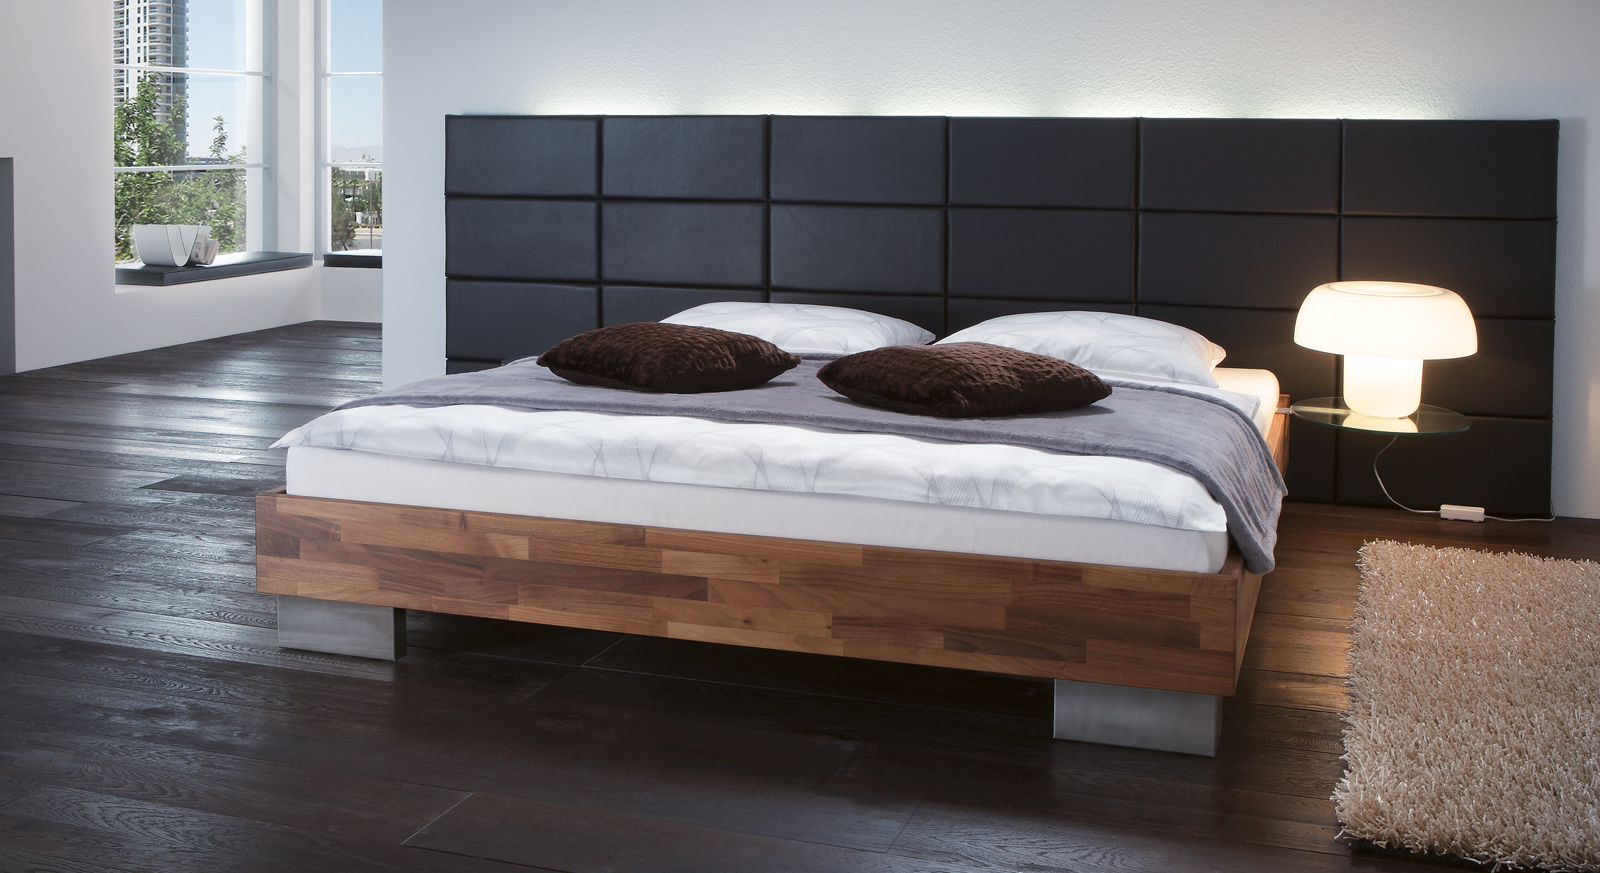 boxspring bett mit nachttisch boxspring bett wei mit kopfteil in der gestaltung g nstiges. Black Bedroom Furniture Sets. Home Design Ideas